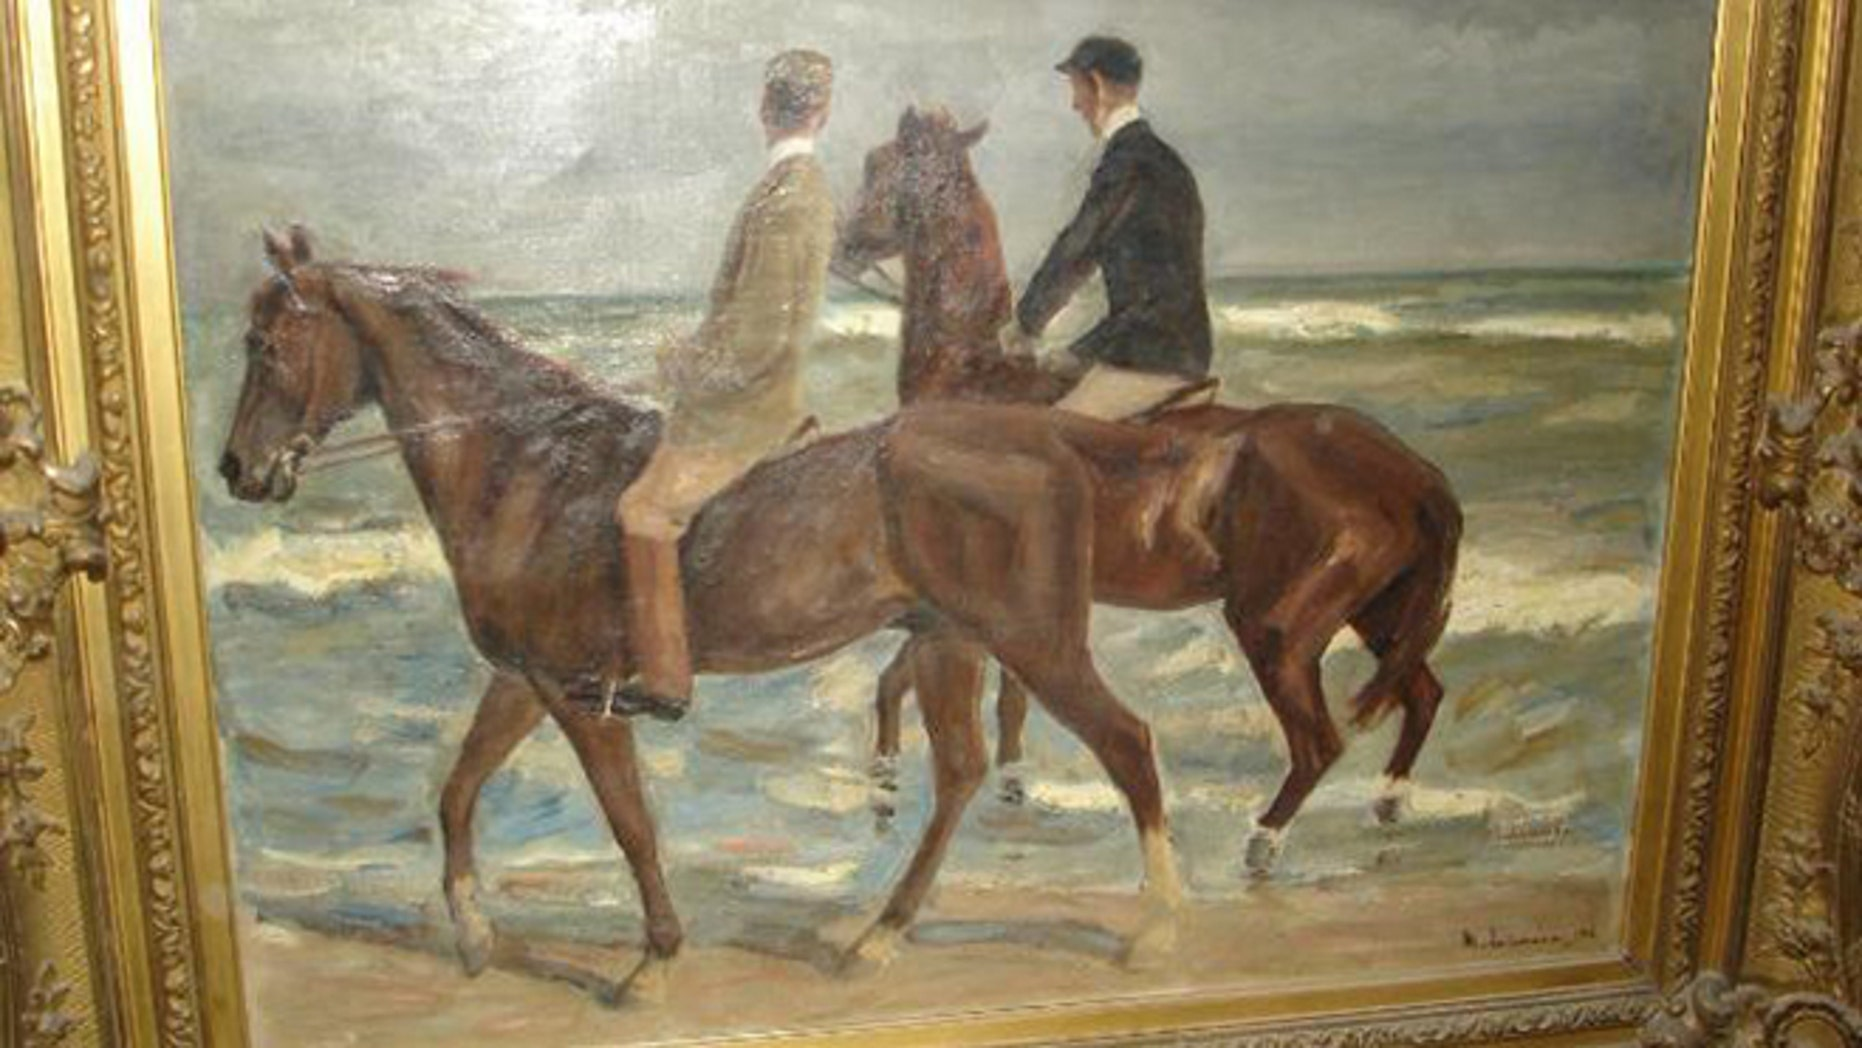 Photo provided by the Augsburg, southern Germany, prosecution Tuesday, Nov. 12, 2013 shows a painting 'Reiter am Strand' ('Riders at the Beach') by German artist Max Liebermann from 1901 that was among the more than 1400 art works that were seized by German authorities in an apartment in Munich in February 2012.